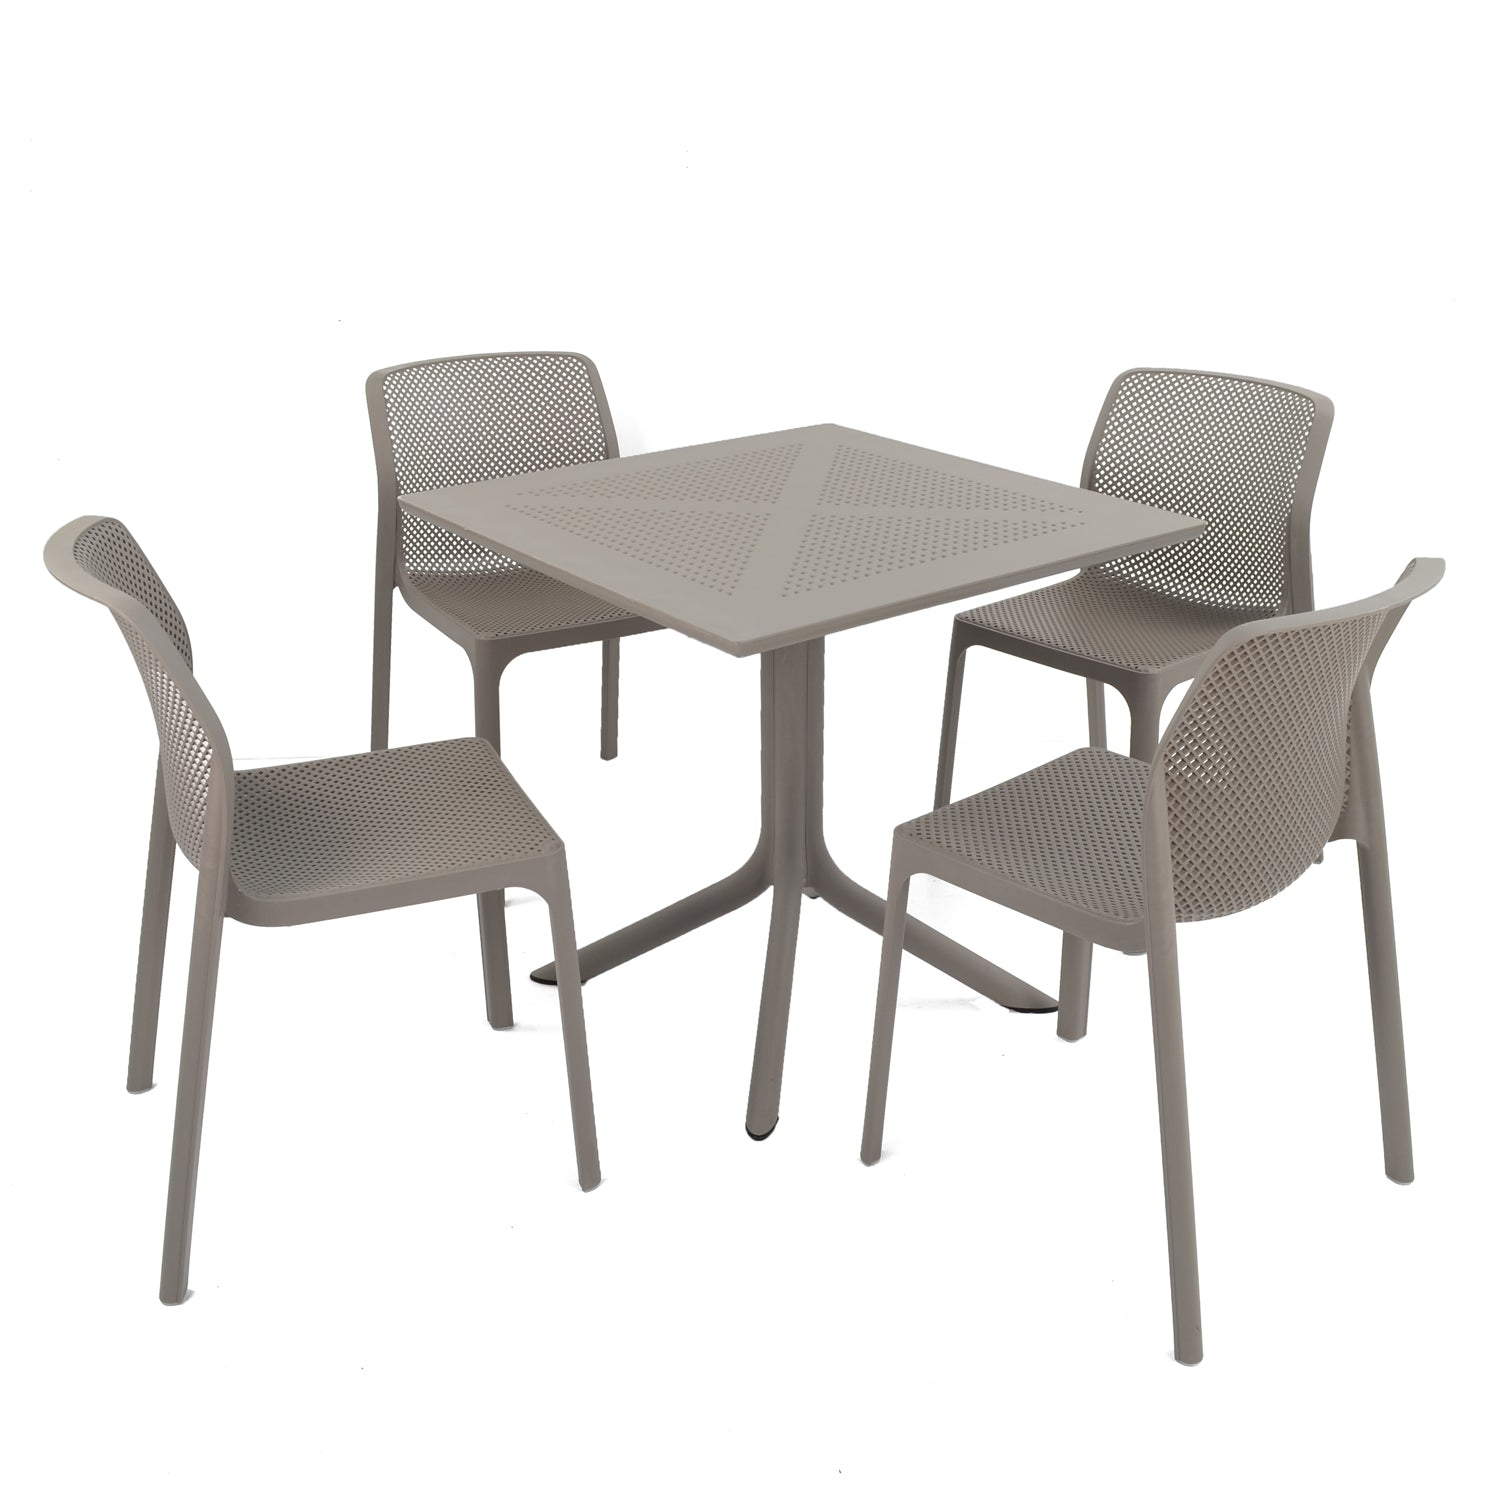 Nardi Clip Dining Table with 4 Bit Chairs Turtle Dove - Ruby's Garden Boutique